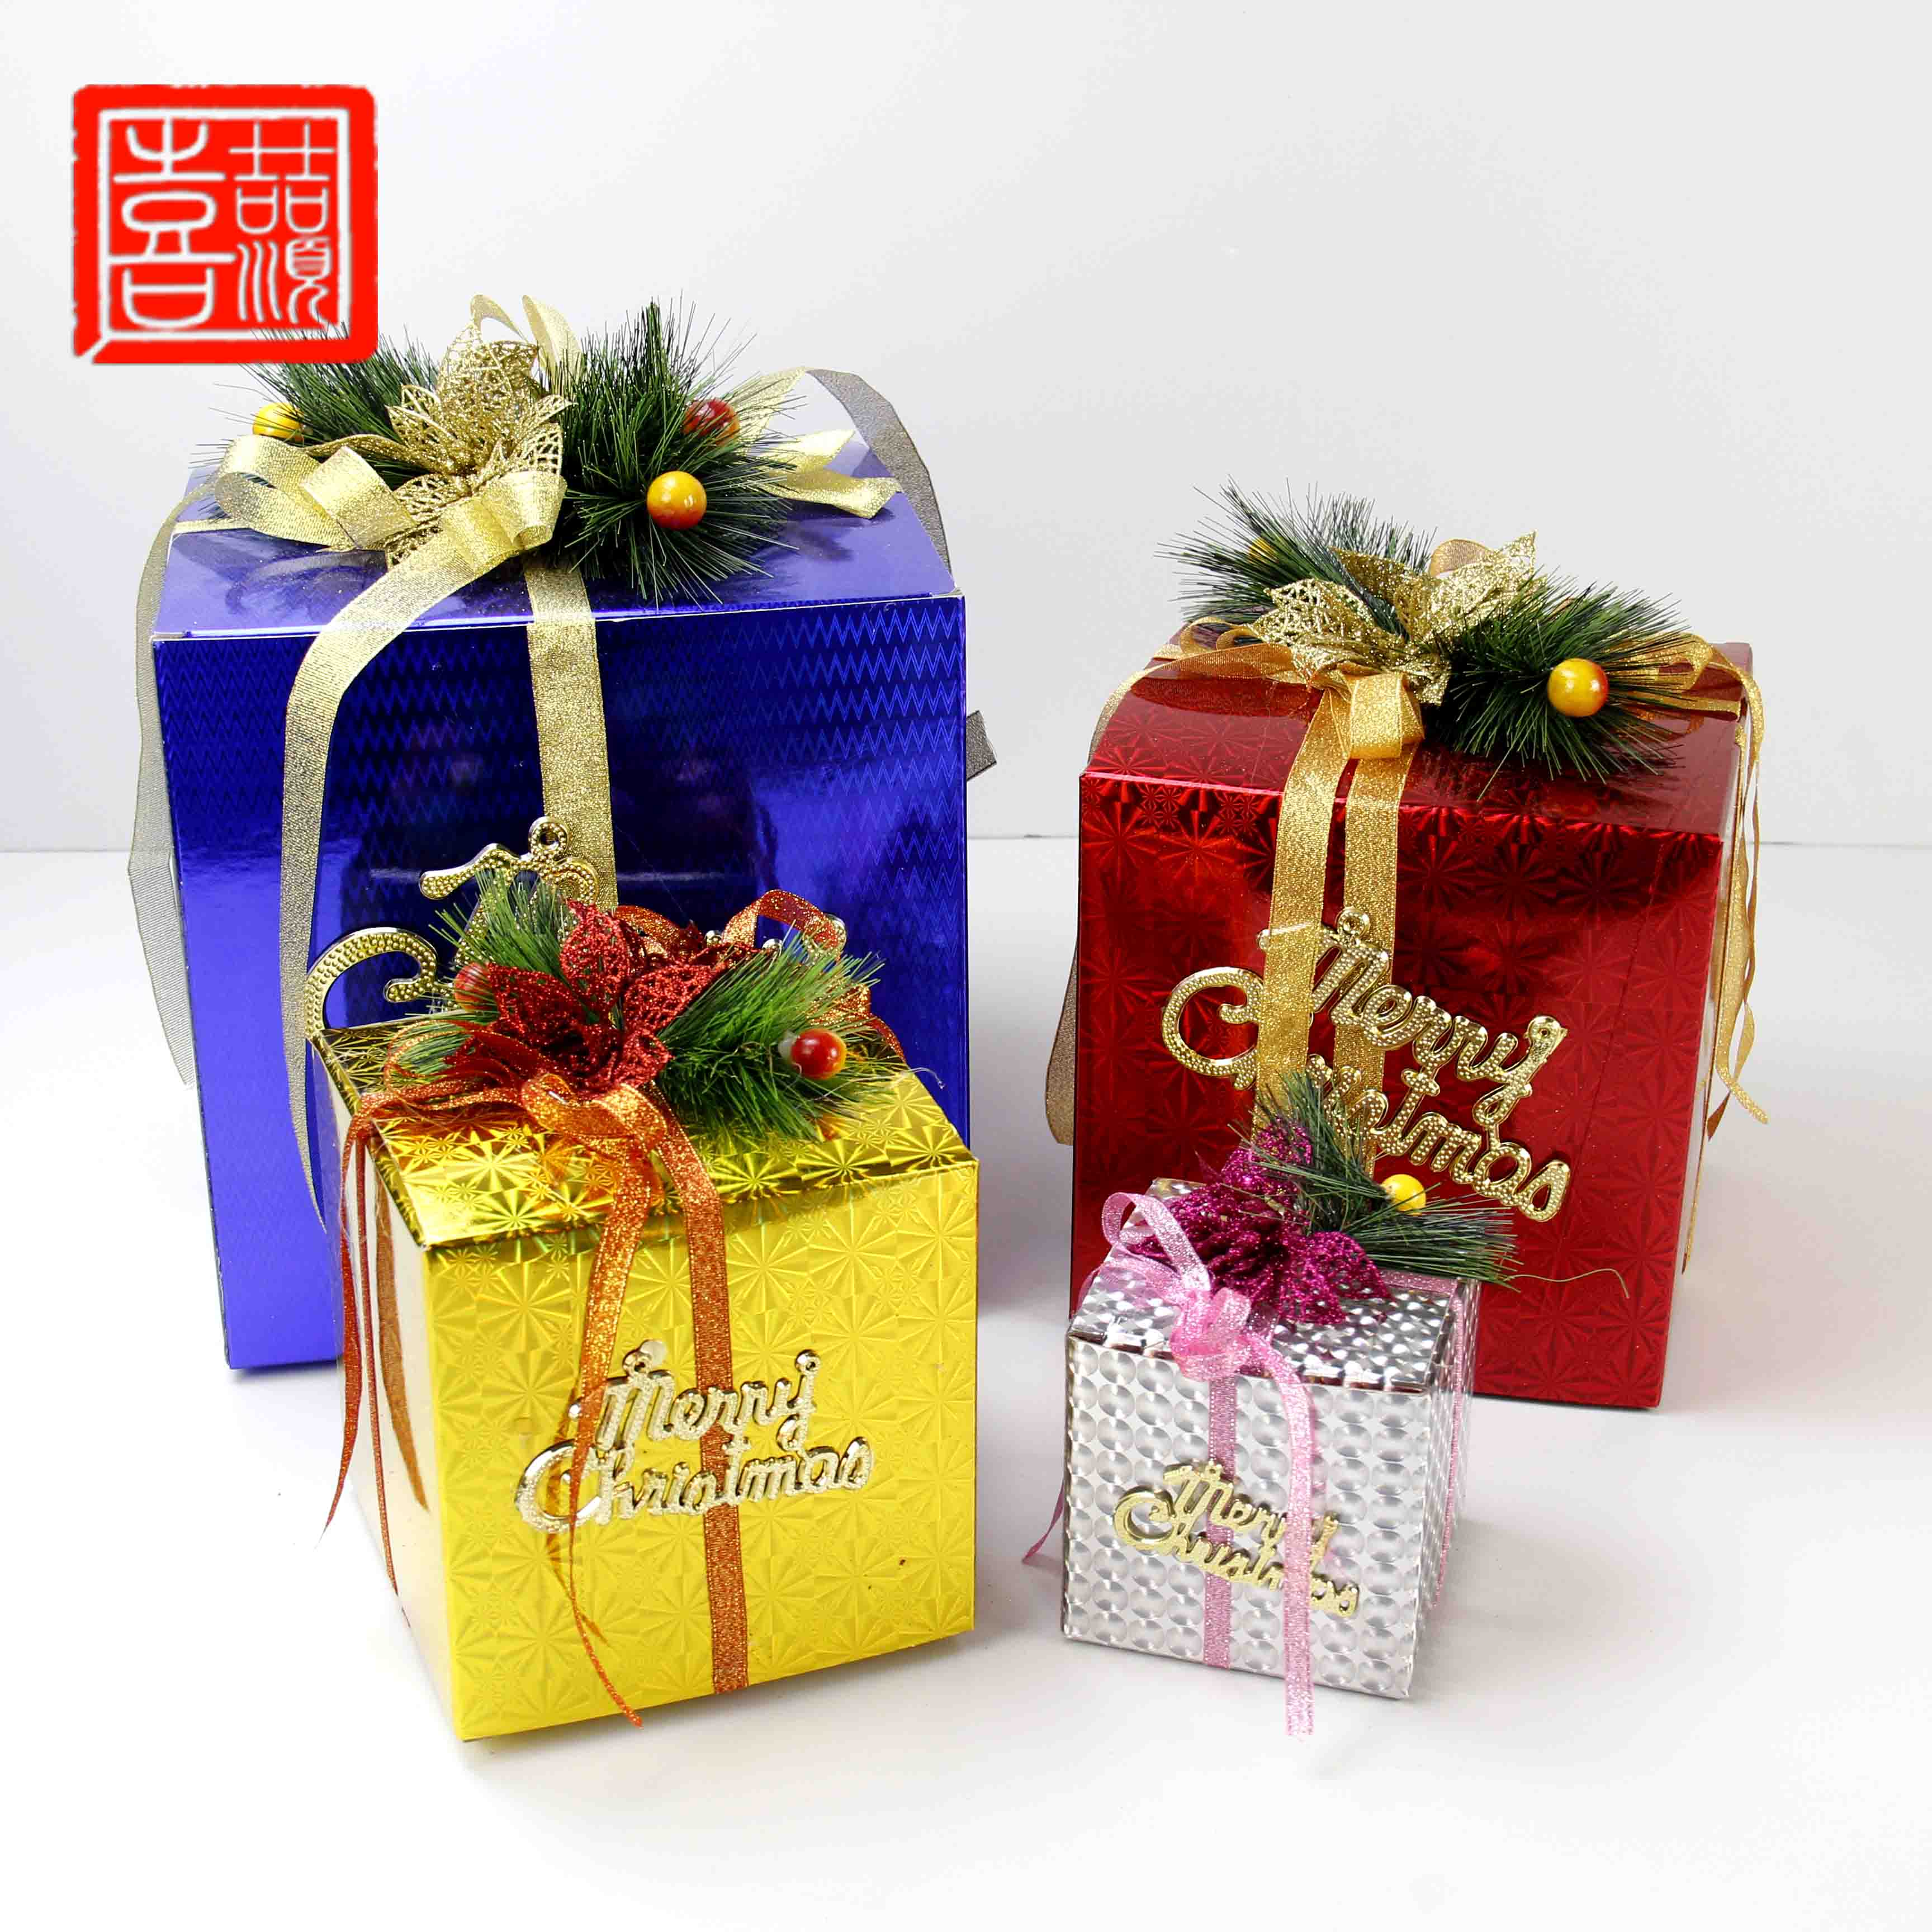 Xi shun zhe stick christmas arrangement of decorative ornaments upscale christmas gift box decorated christmas fruit safe box